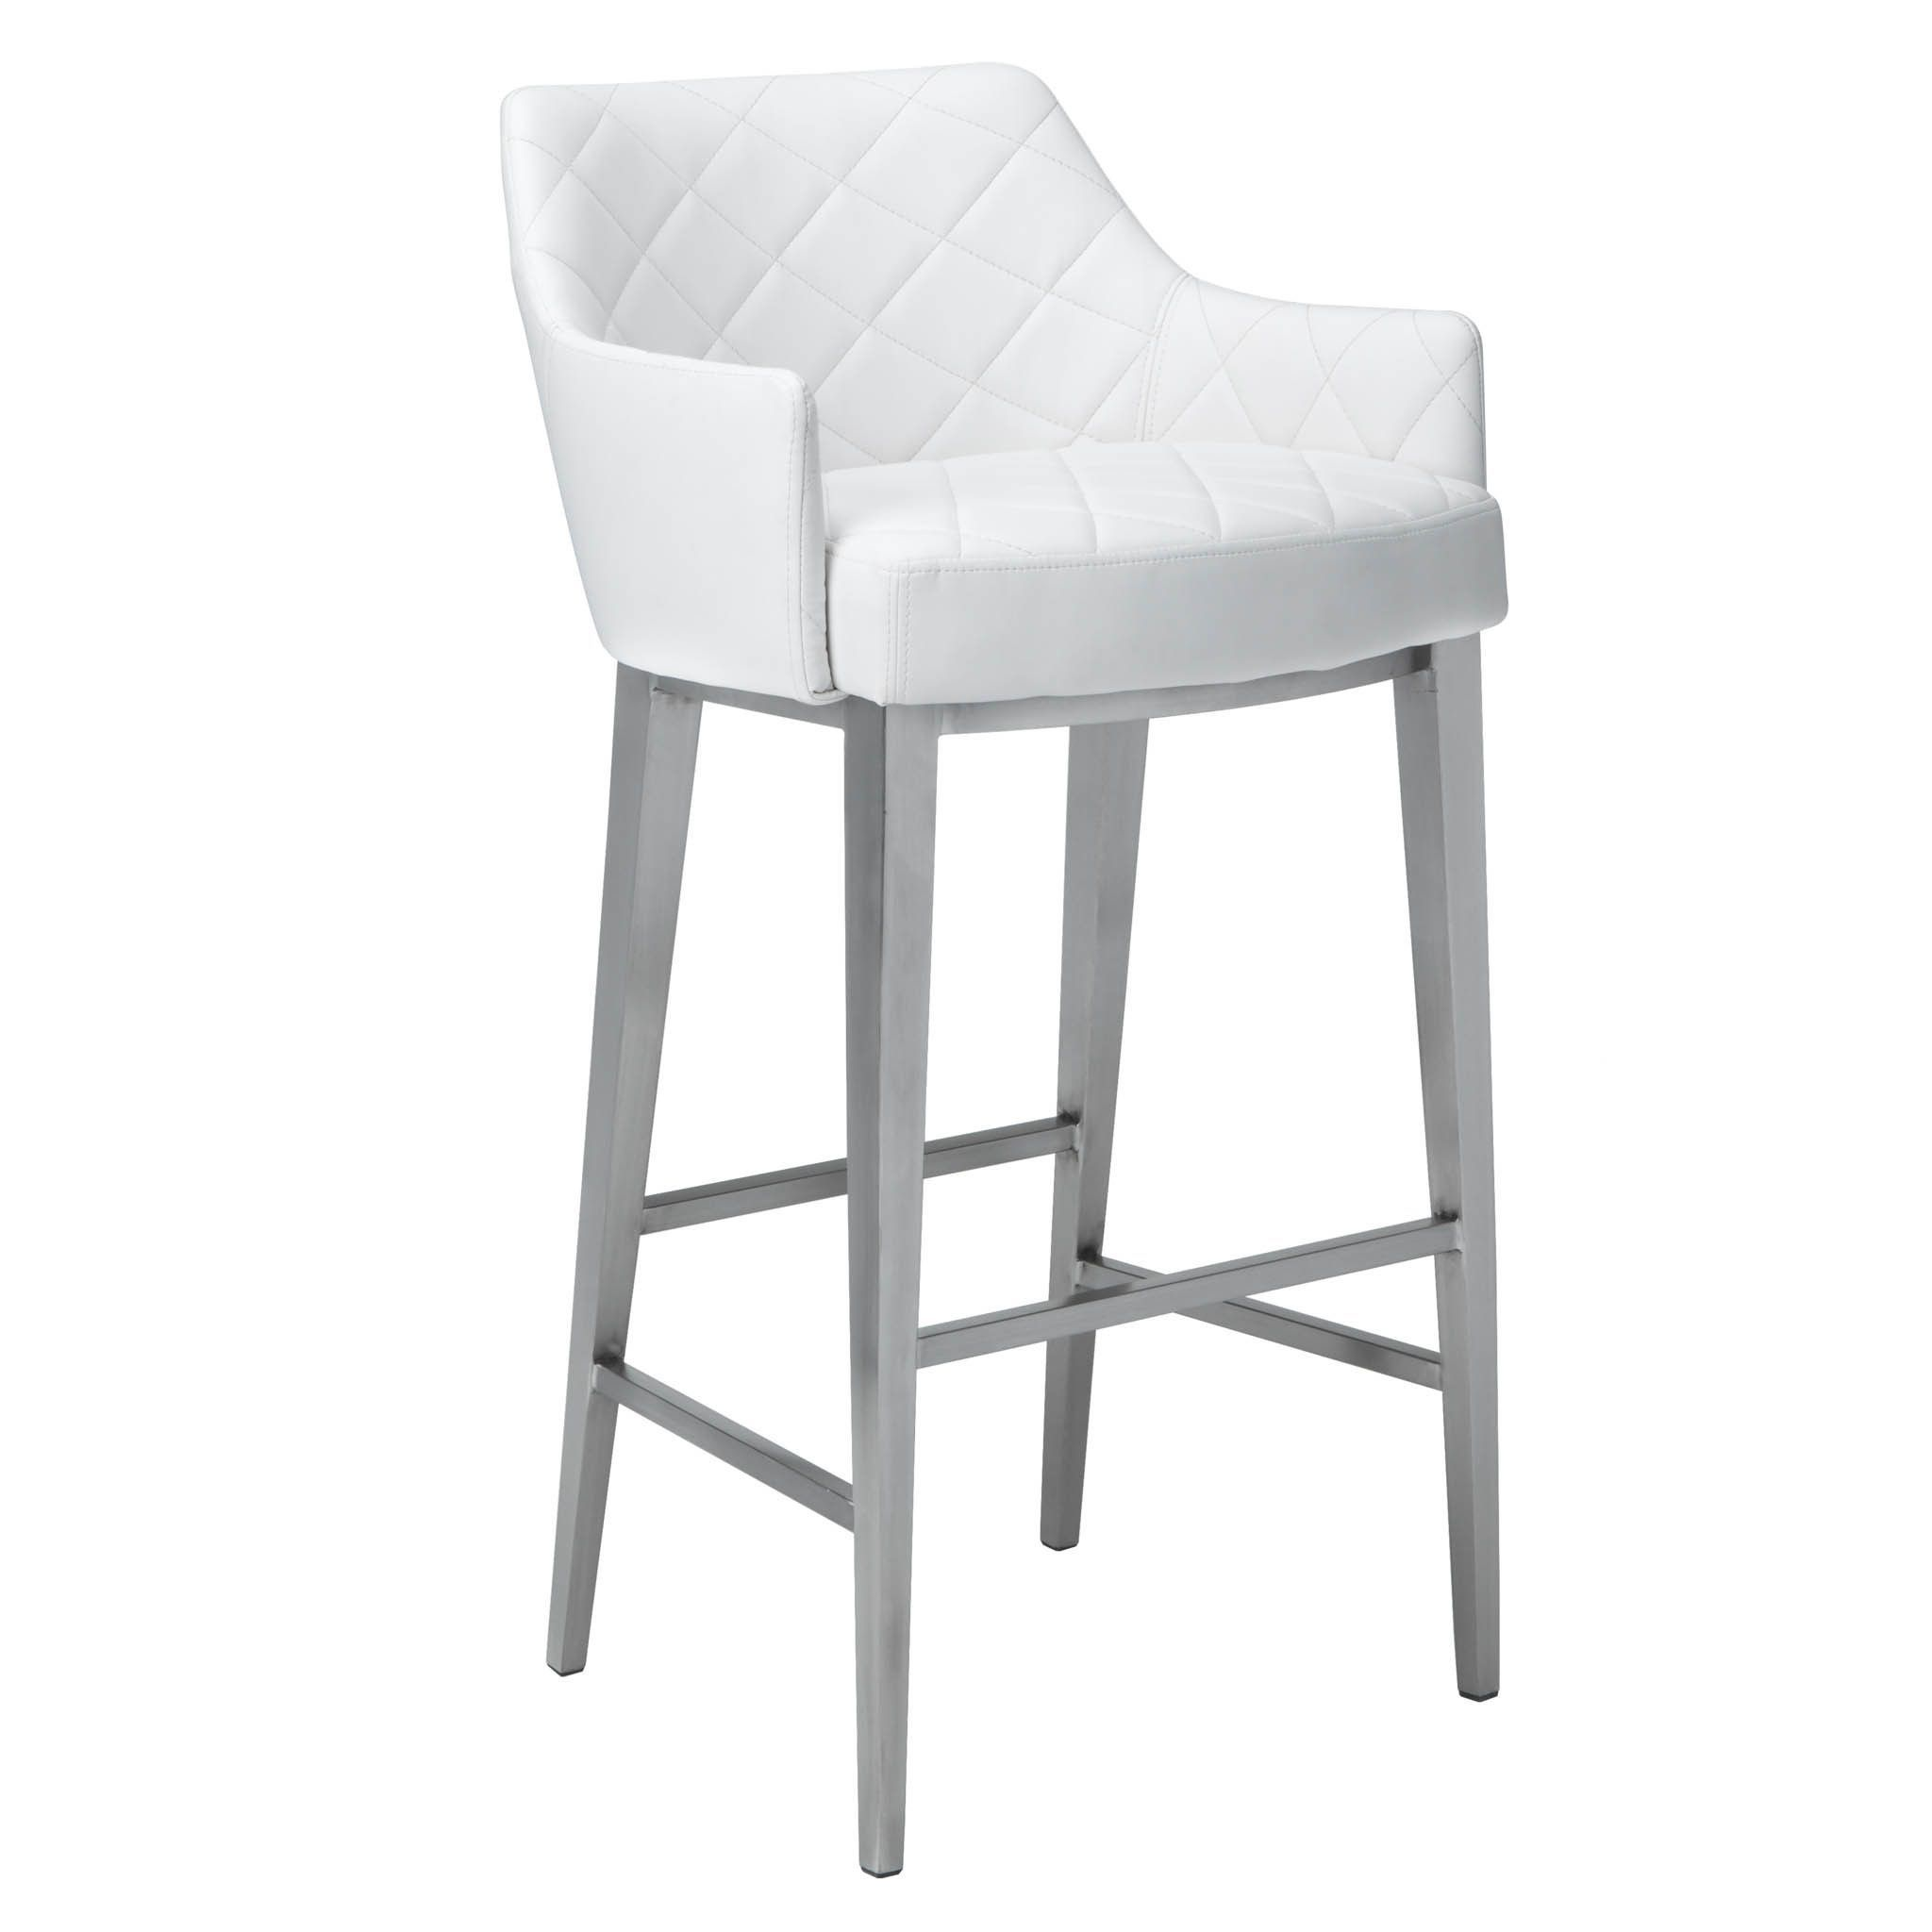 Sunpan Ikon Chase Faux Leather Bar Stool Chase White Barstool